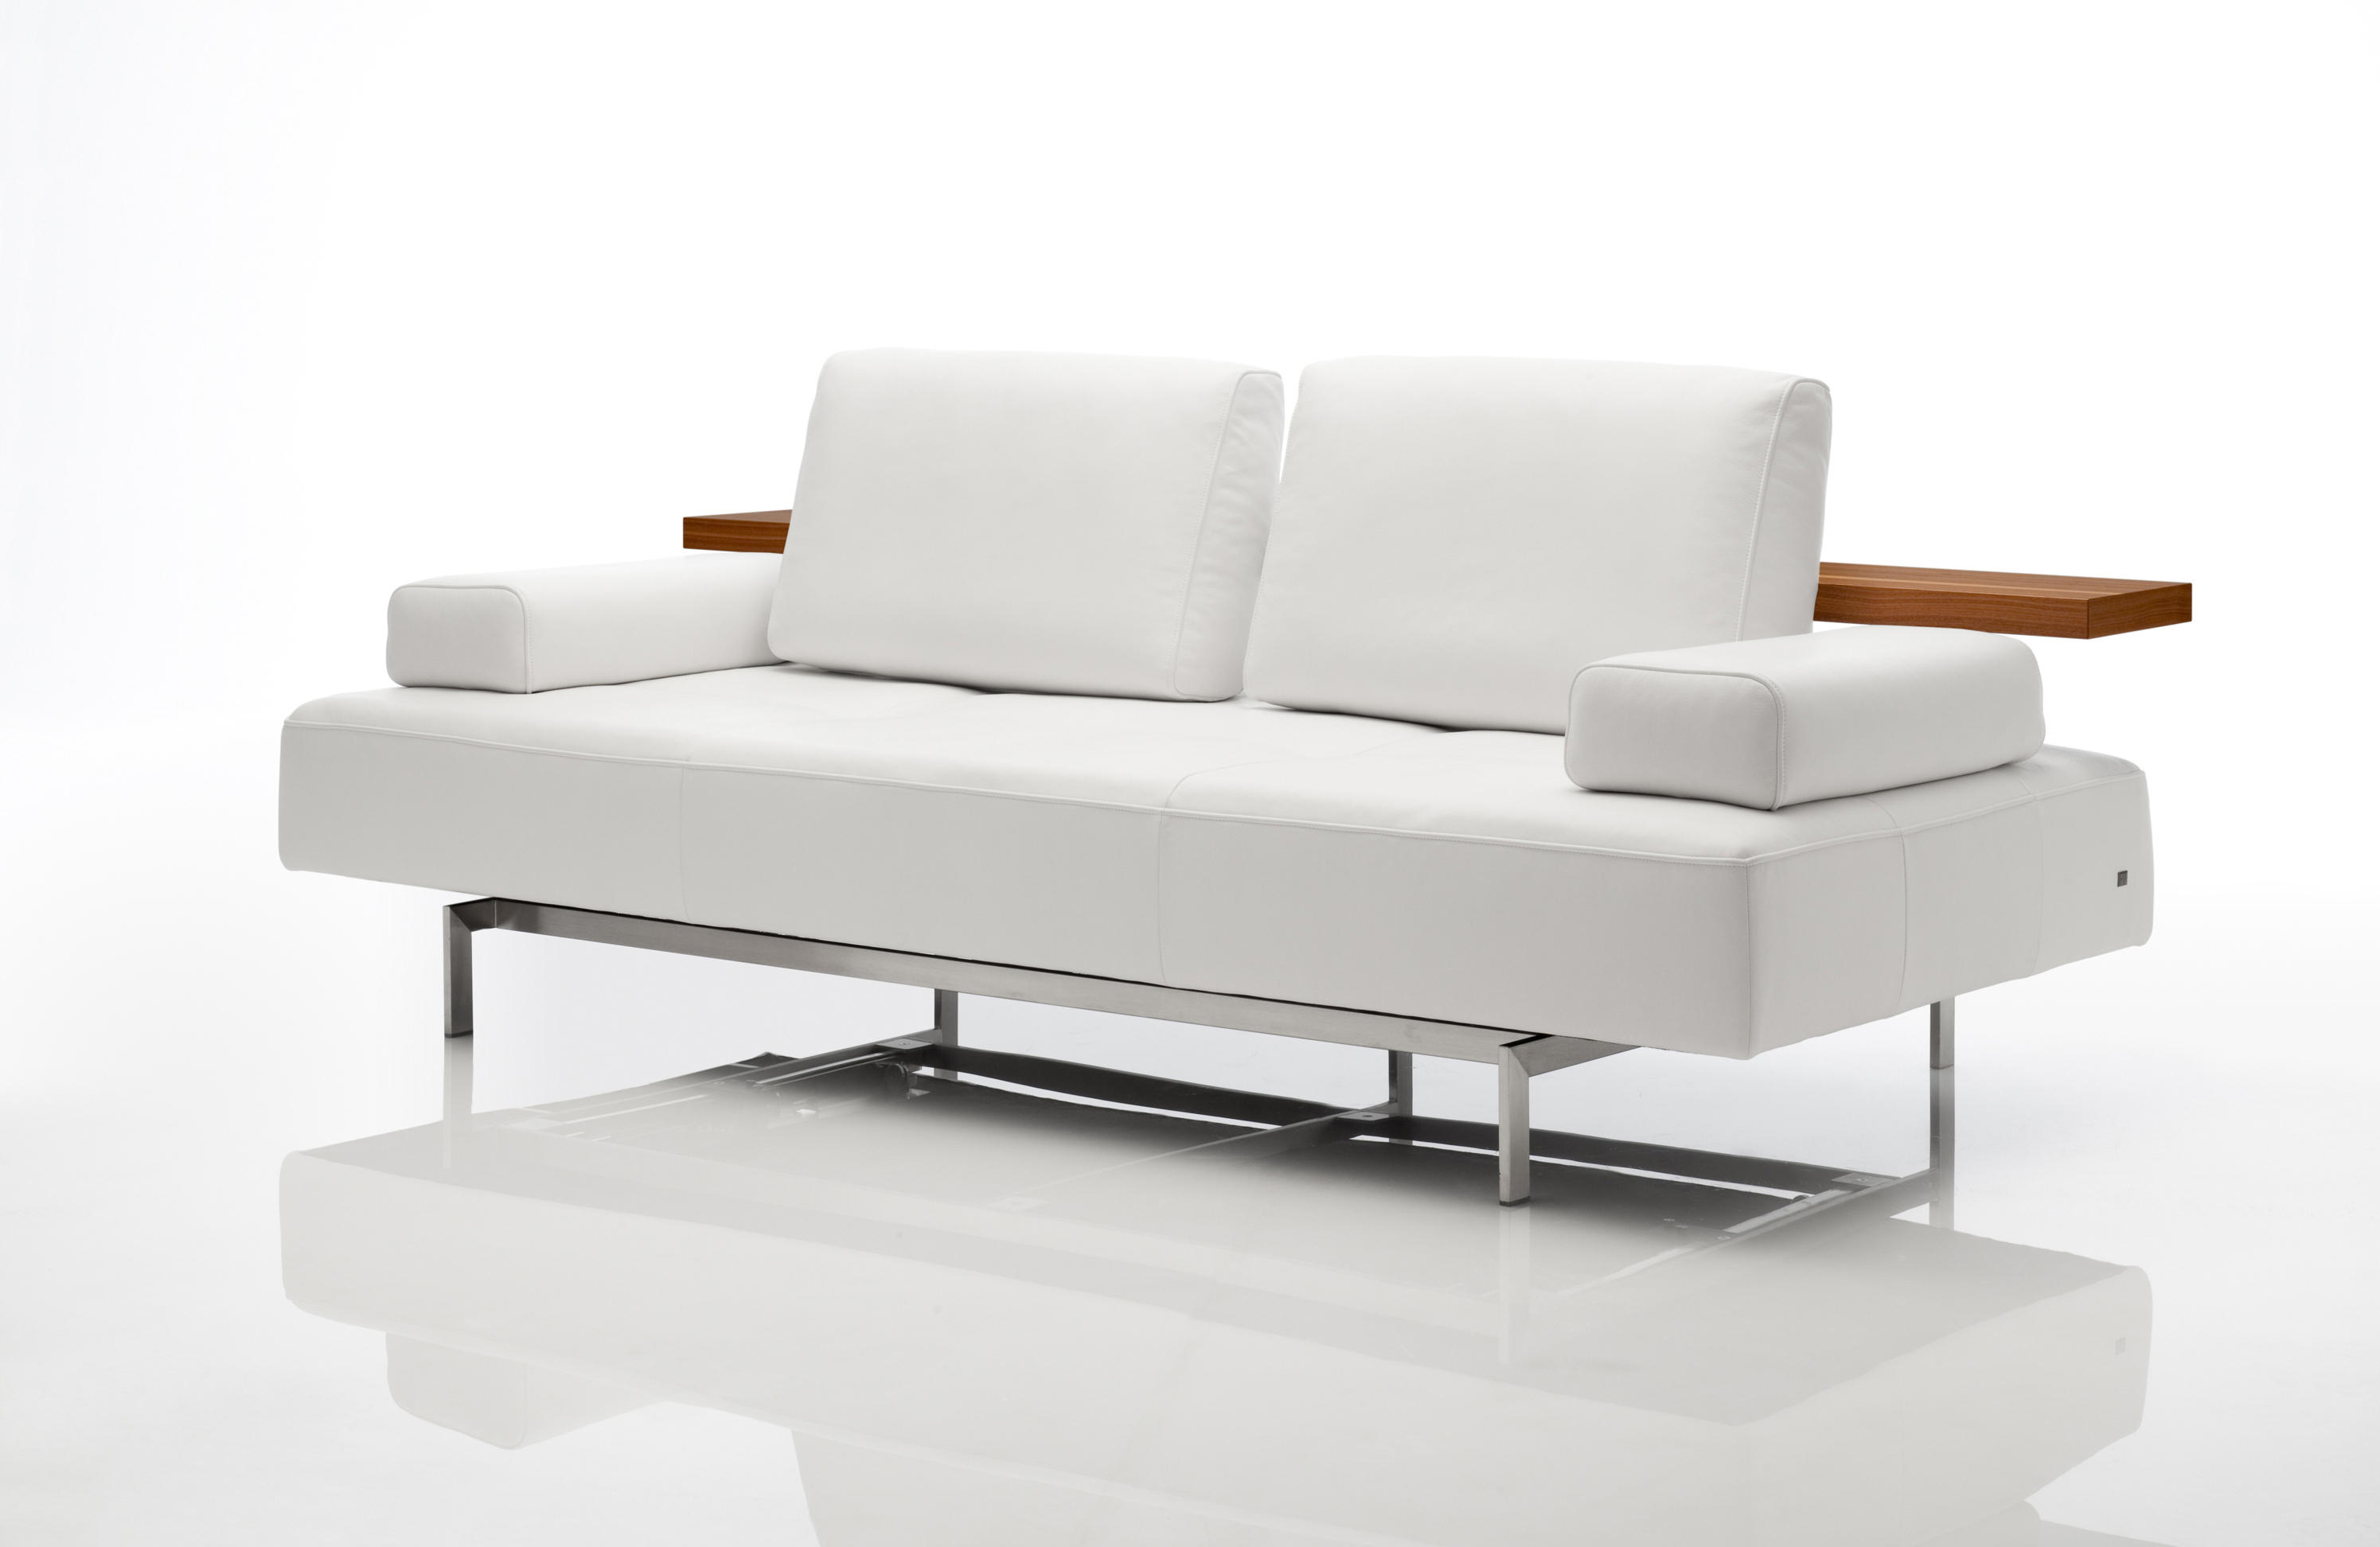 Benz Couch Rolf Benz Dono Sofas From Rolf Benz Architonic